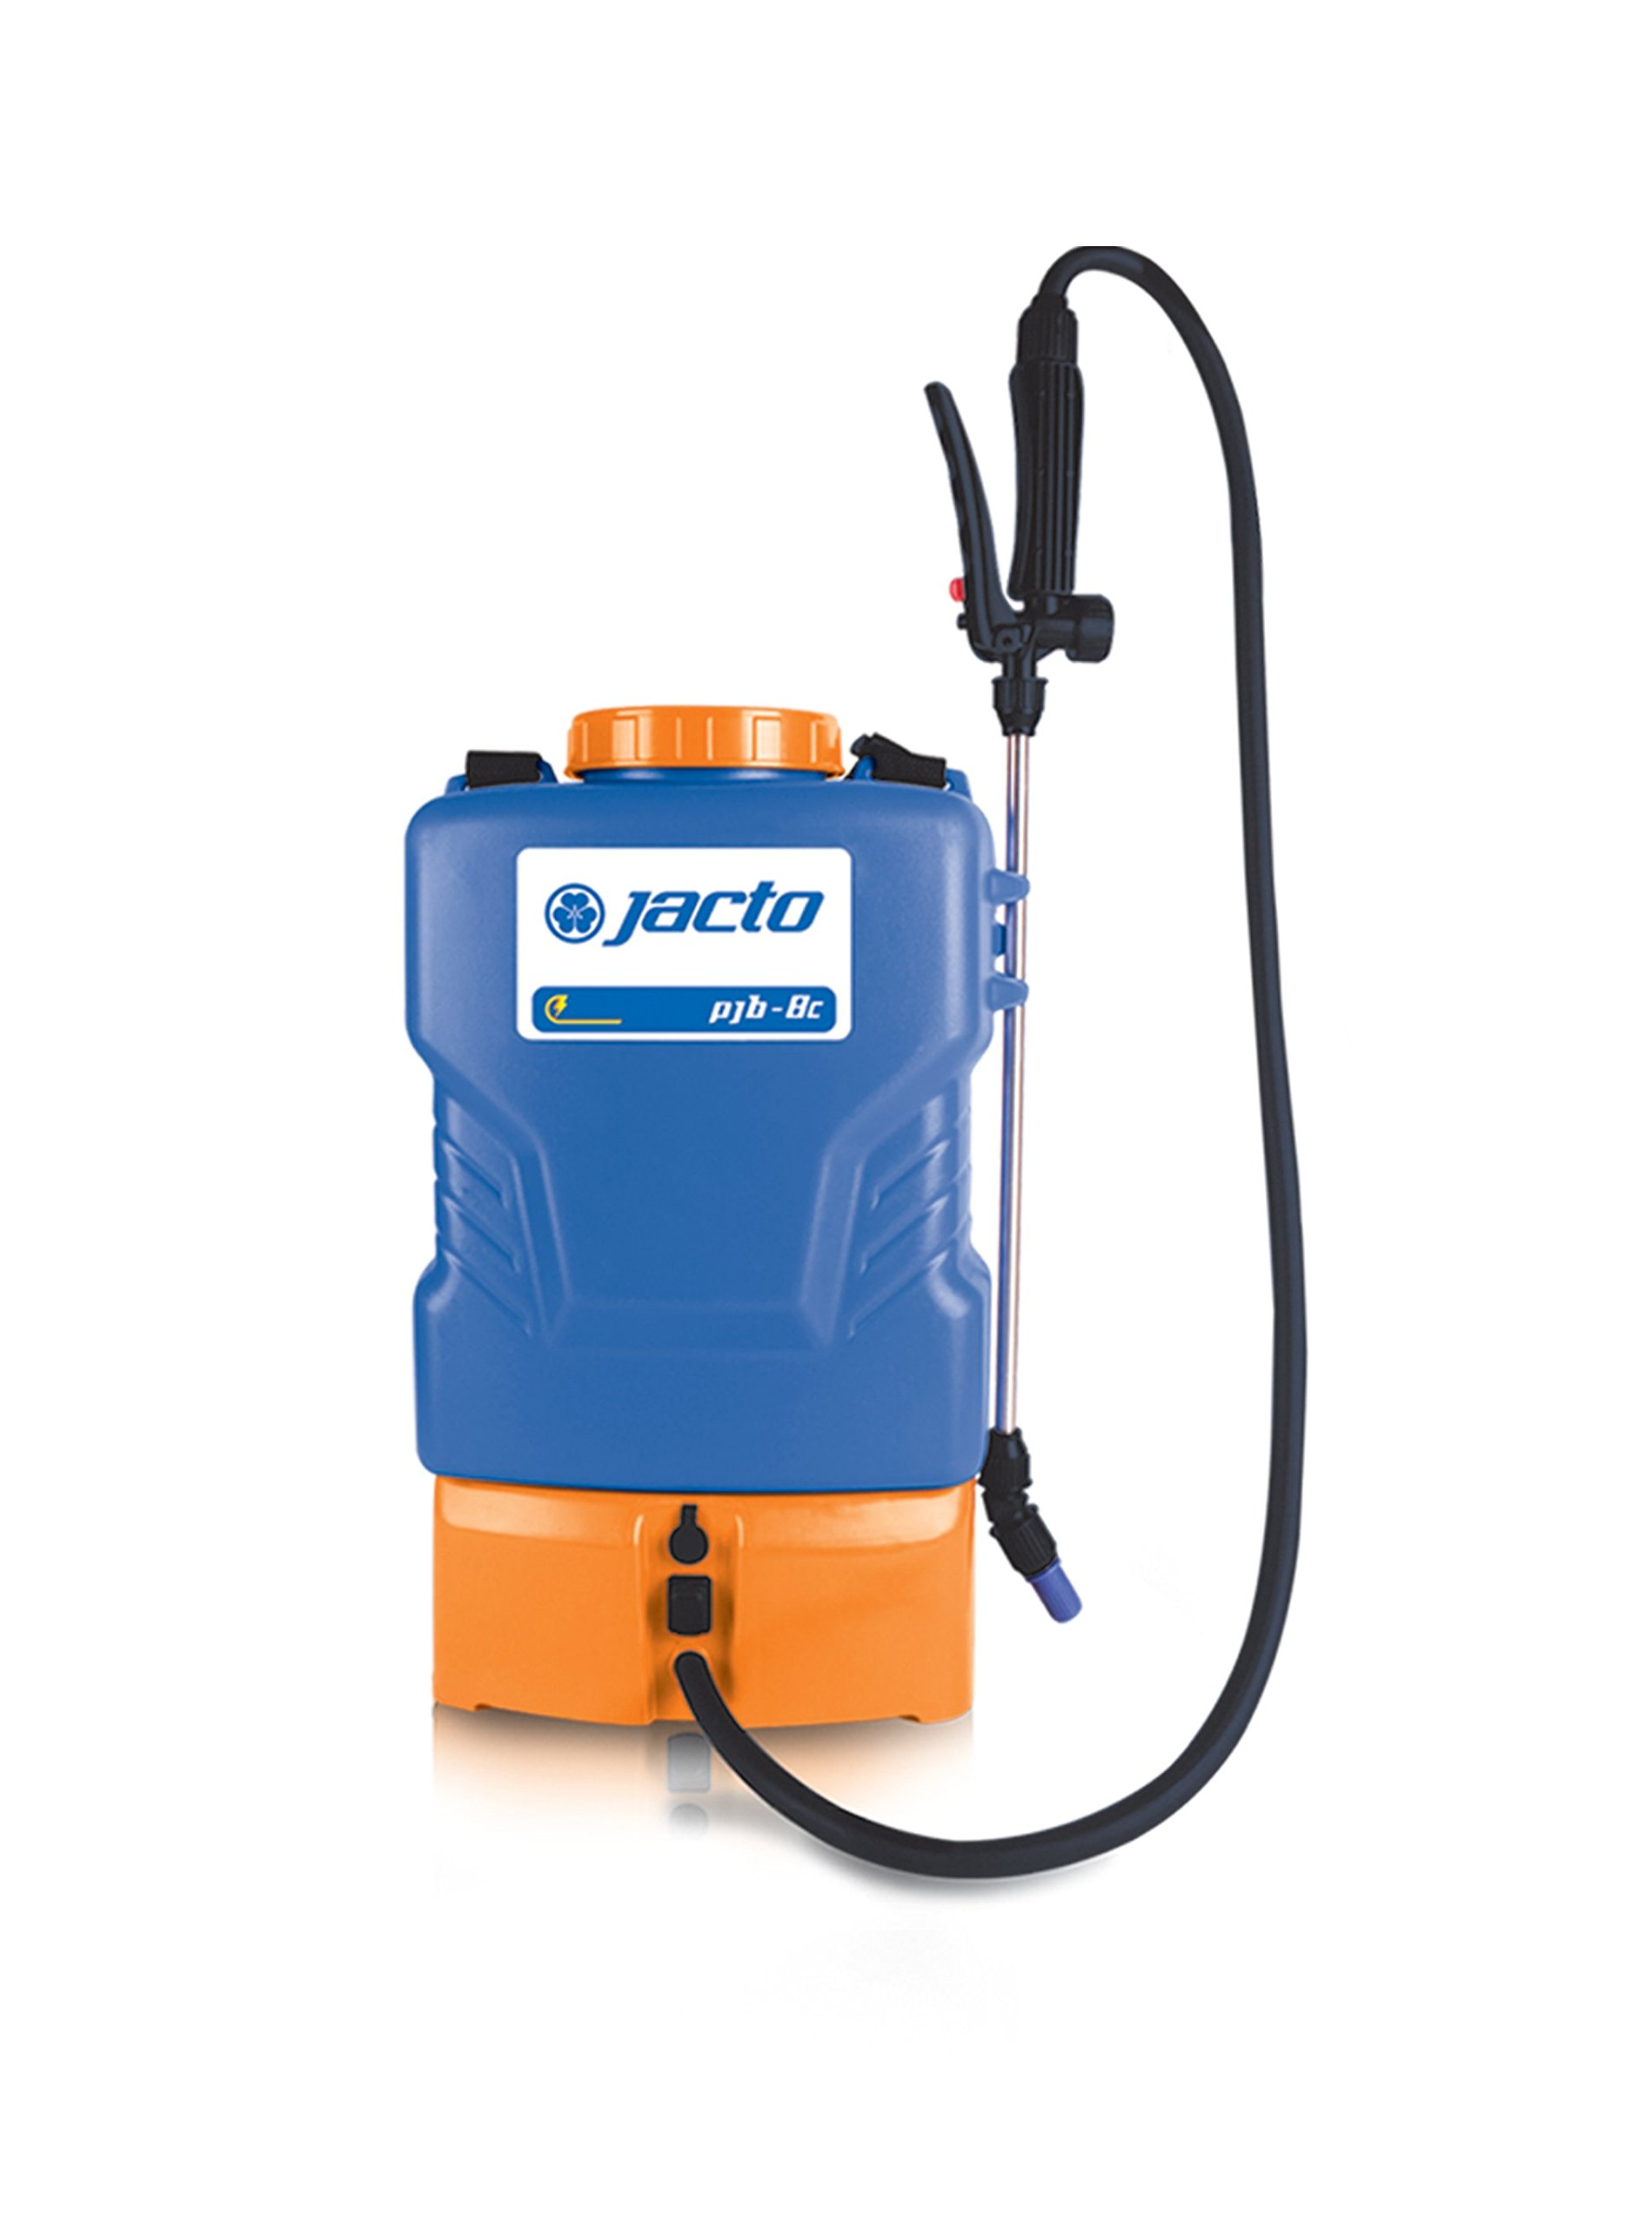 Jacto PJB-8c Backpack Sprayer, Blue by Jacto